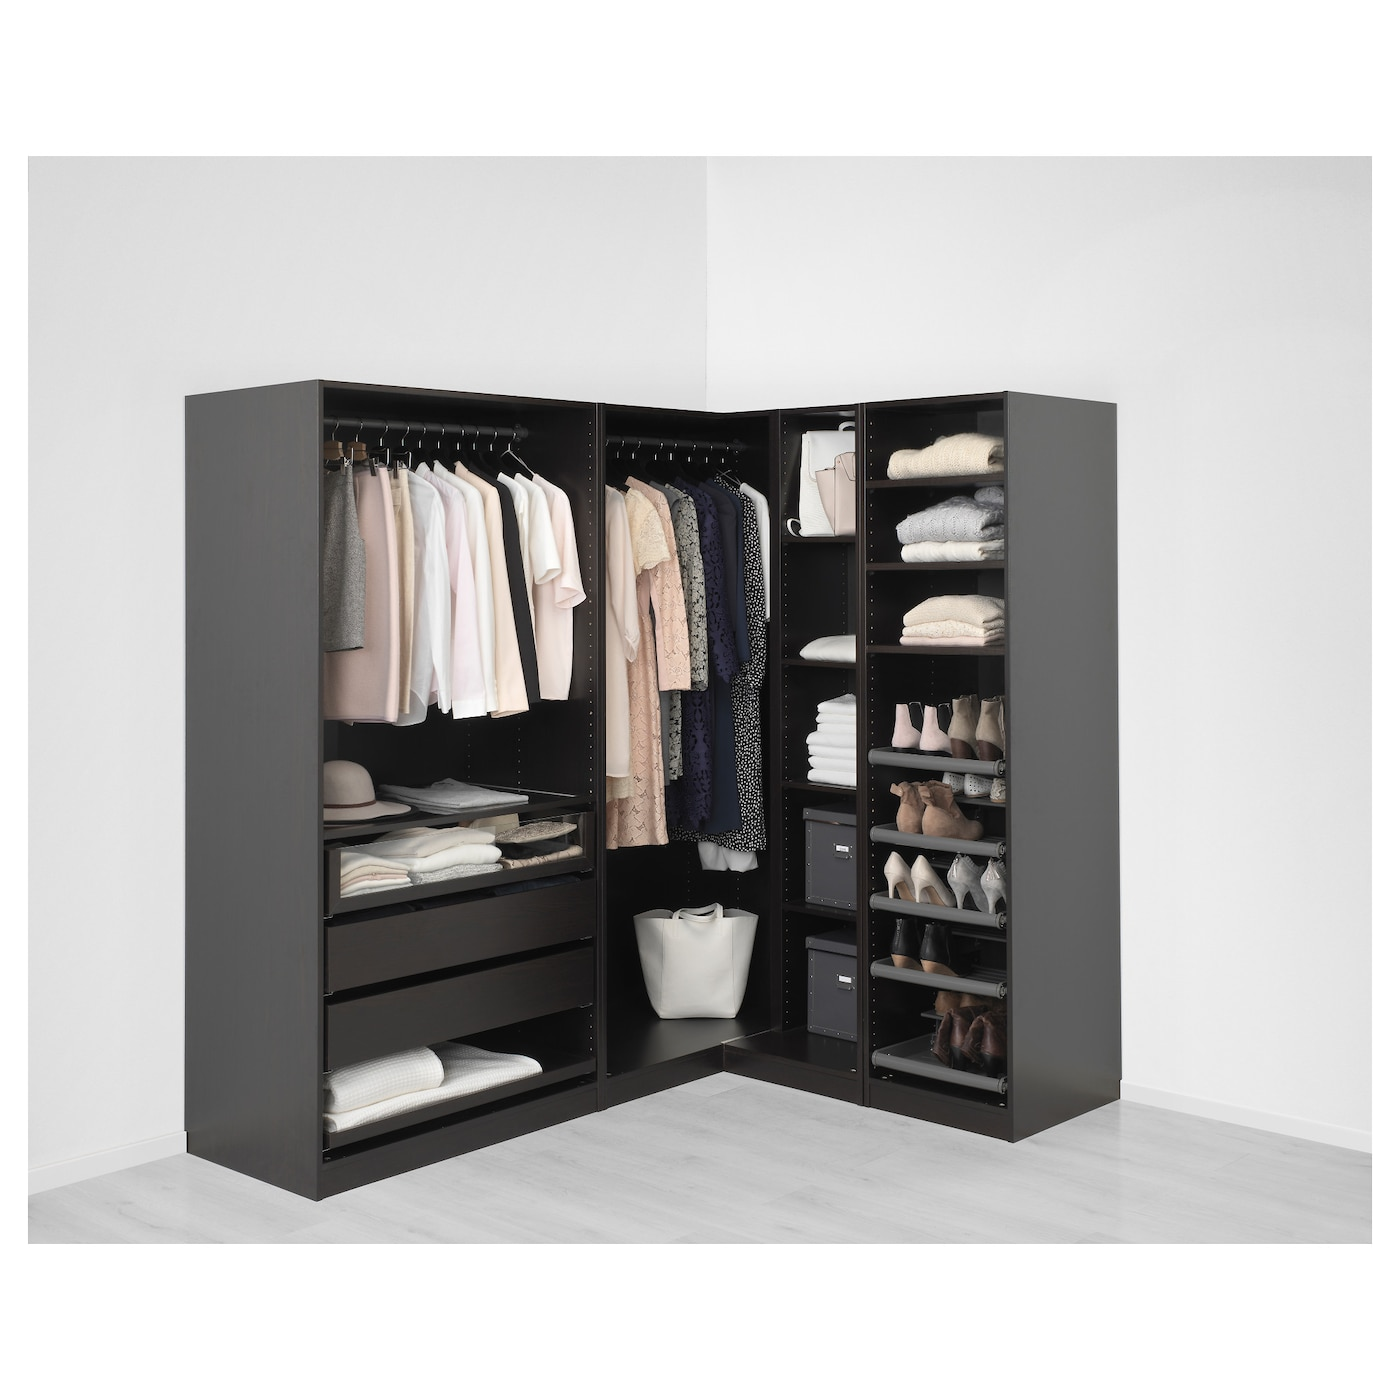 PAX Corner Wardrobe Black-brown/nexus Vikedal 210/160 X